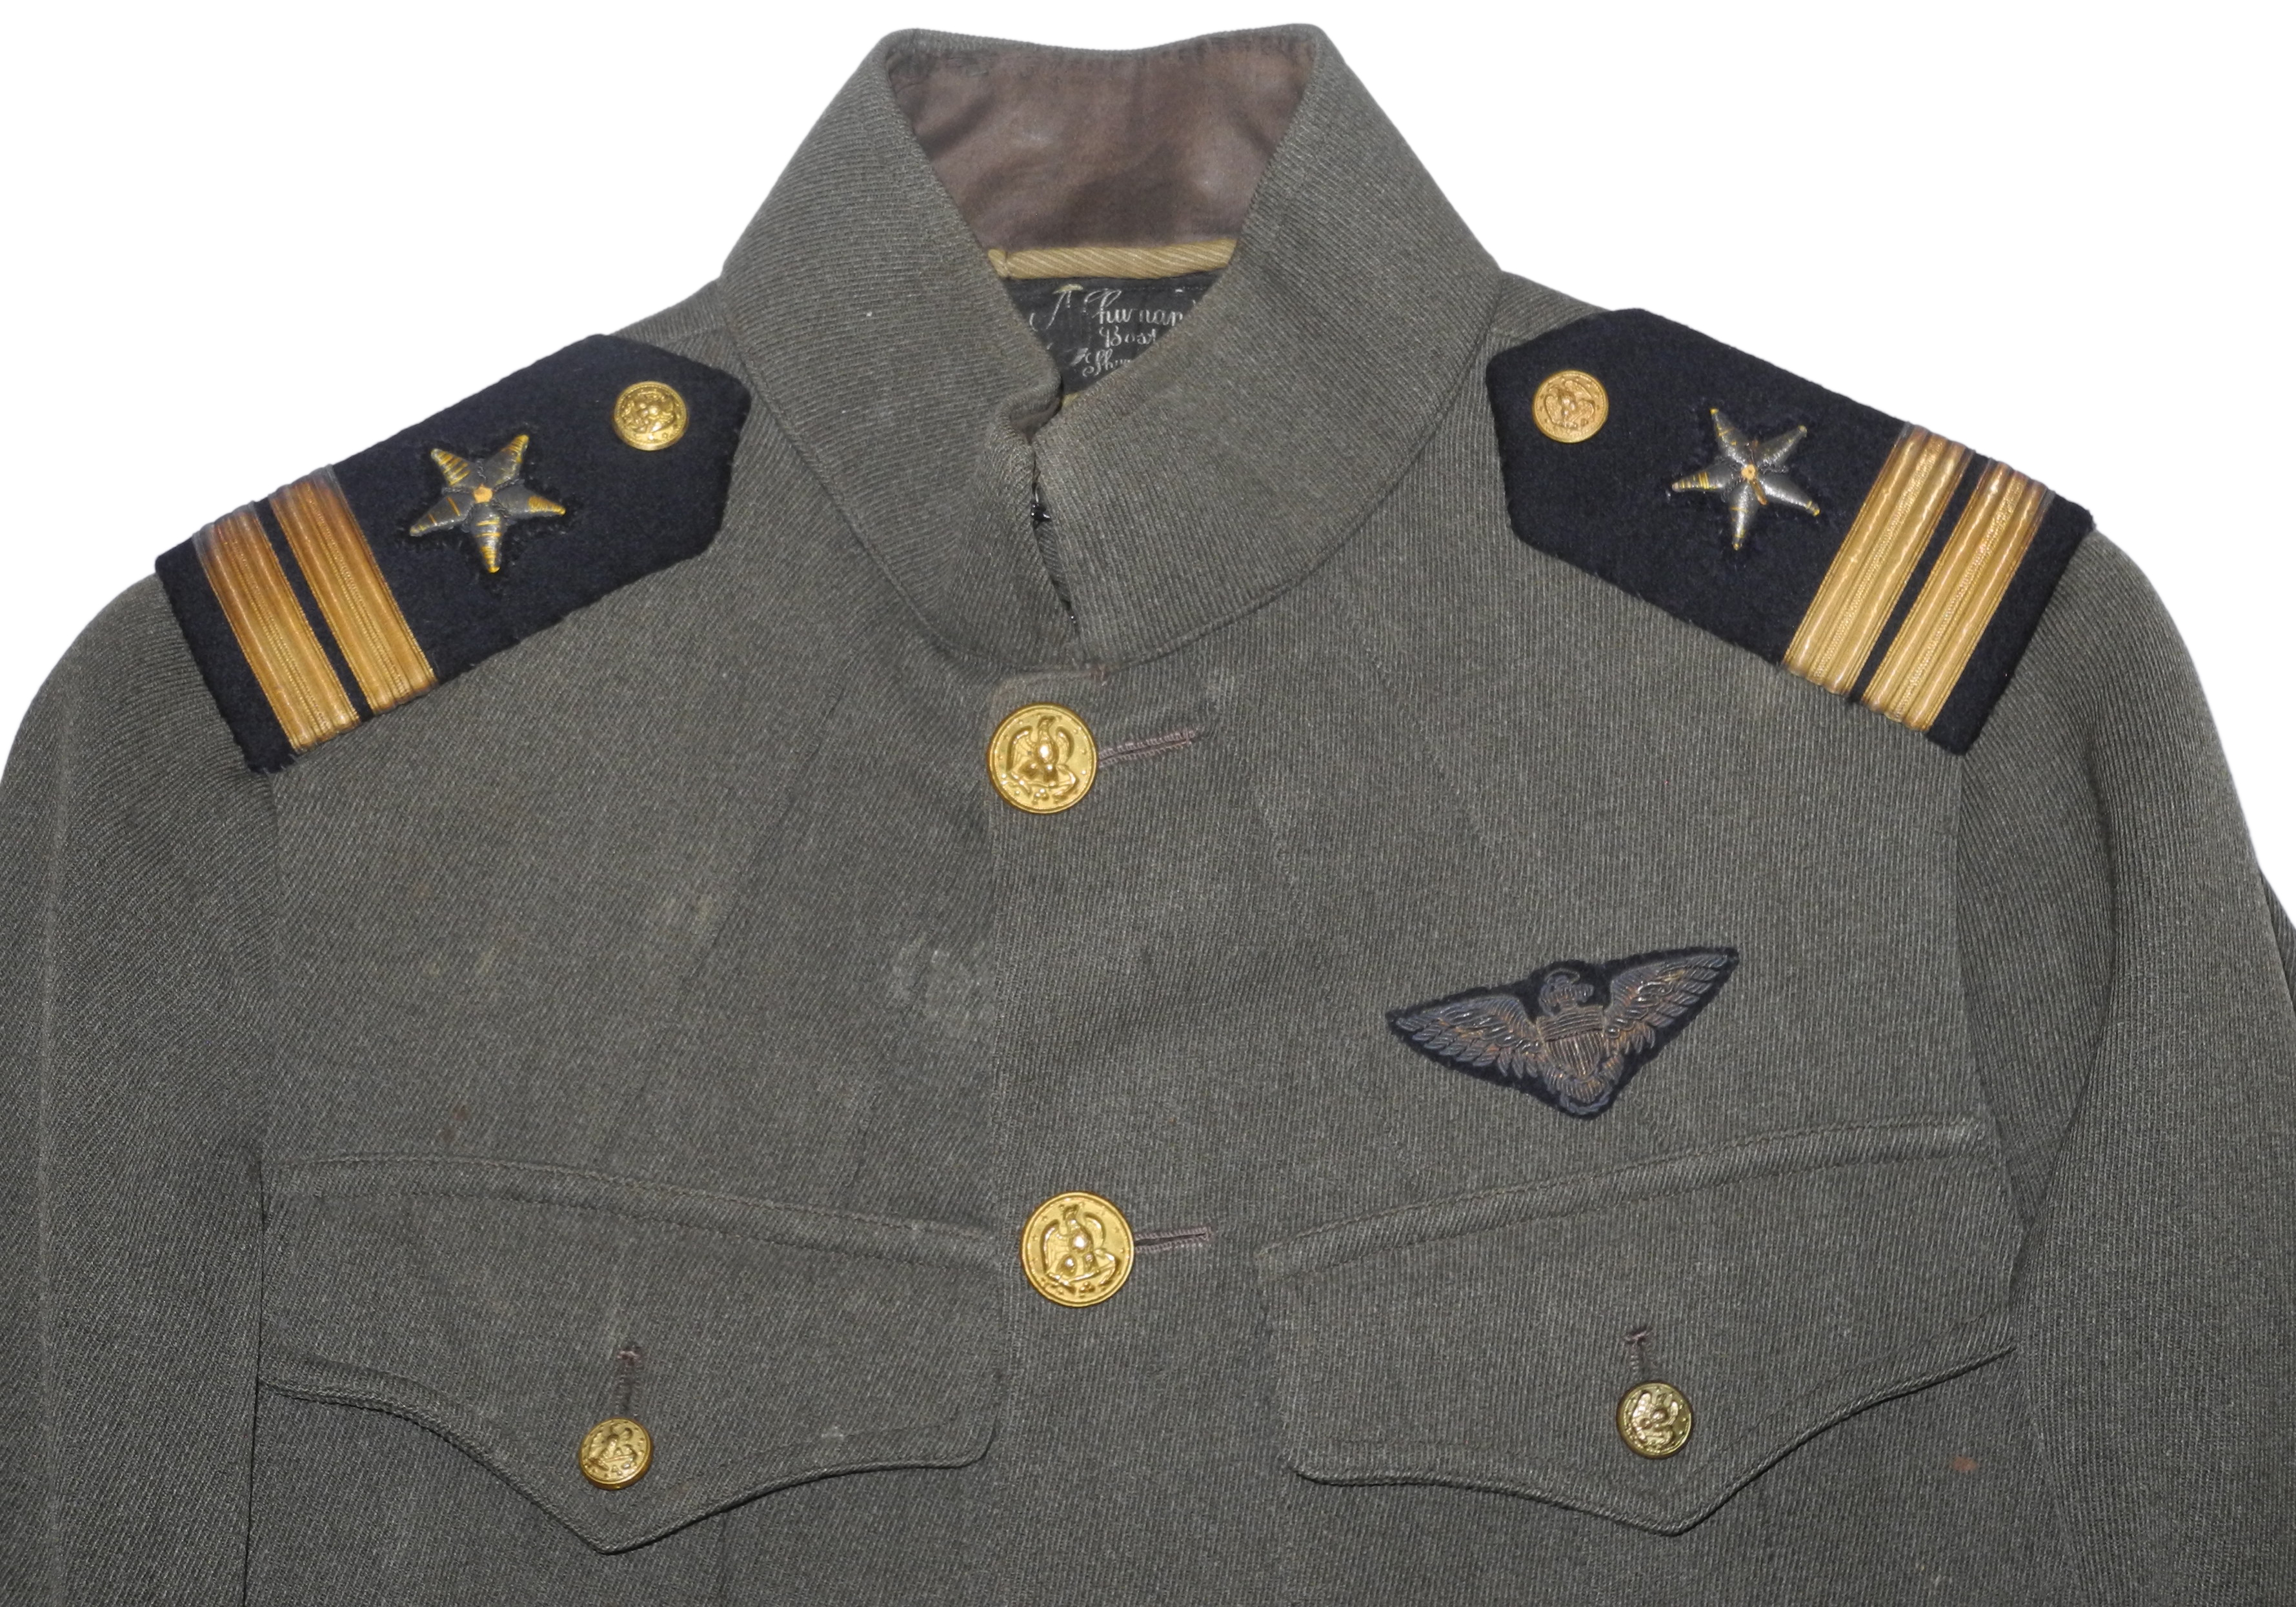 WWI USN aviator cap and tunic